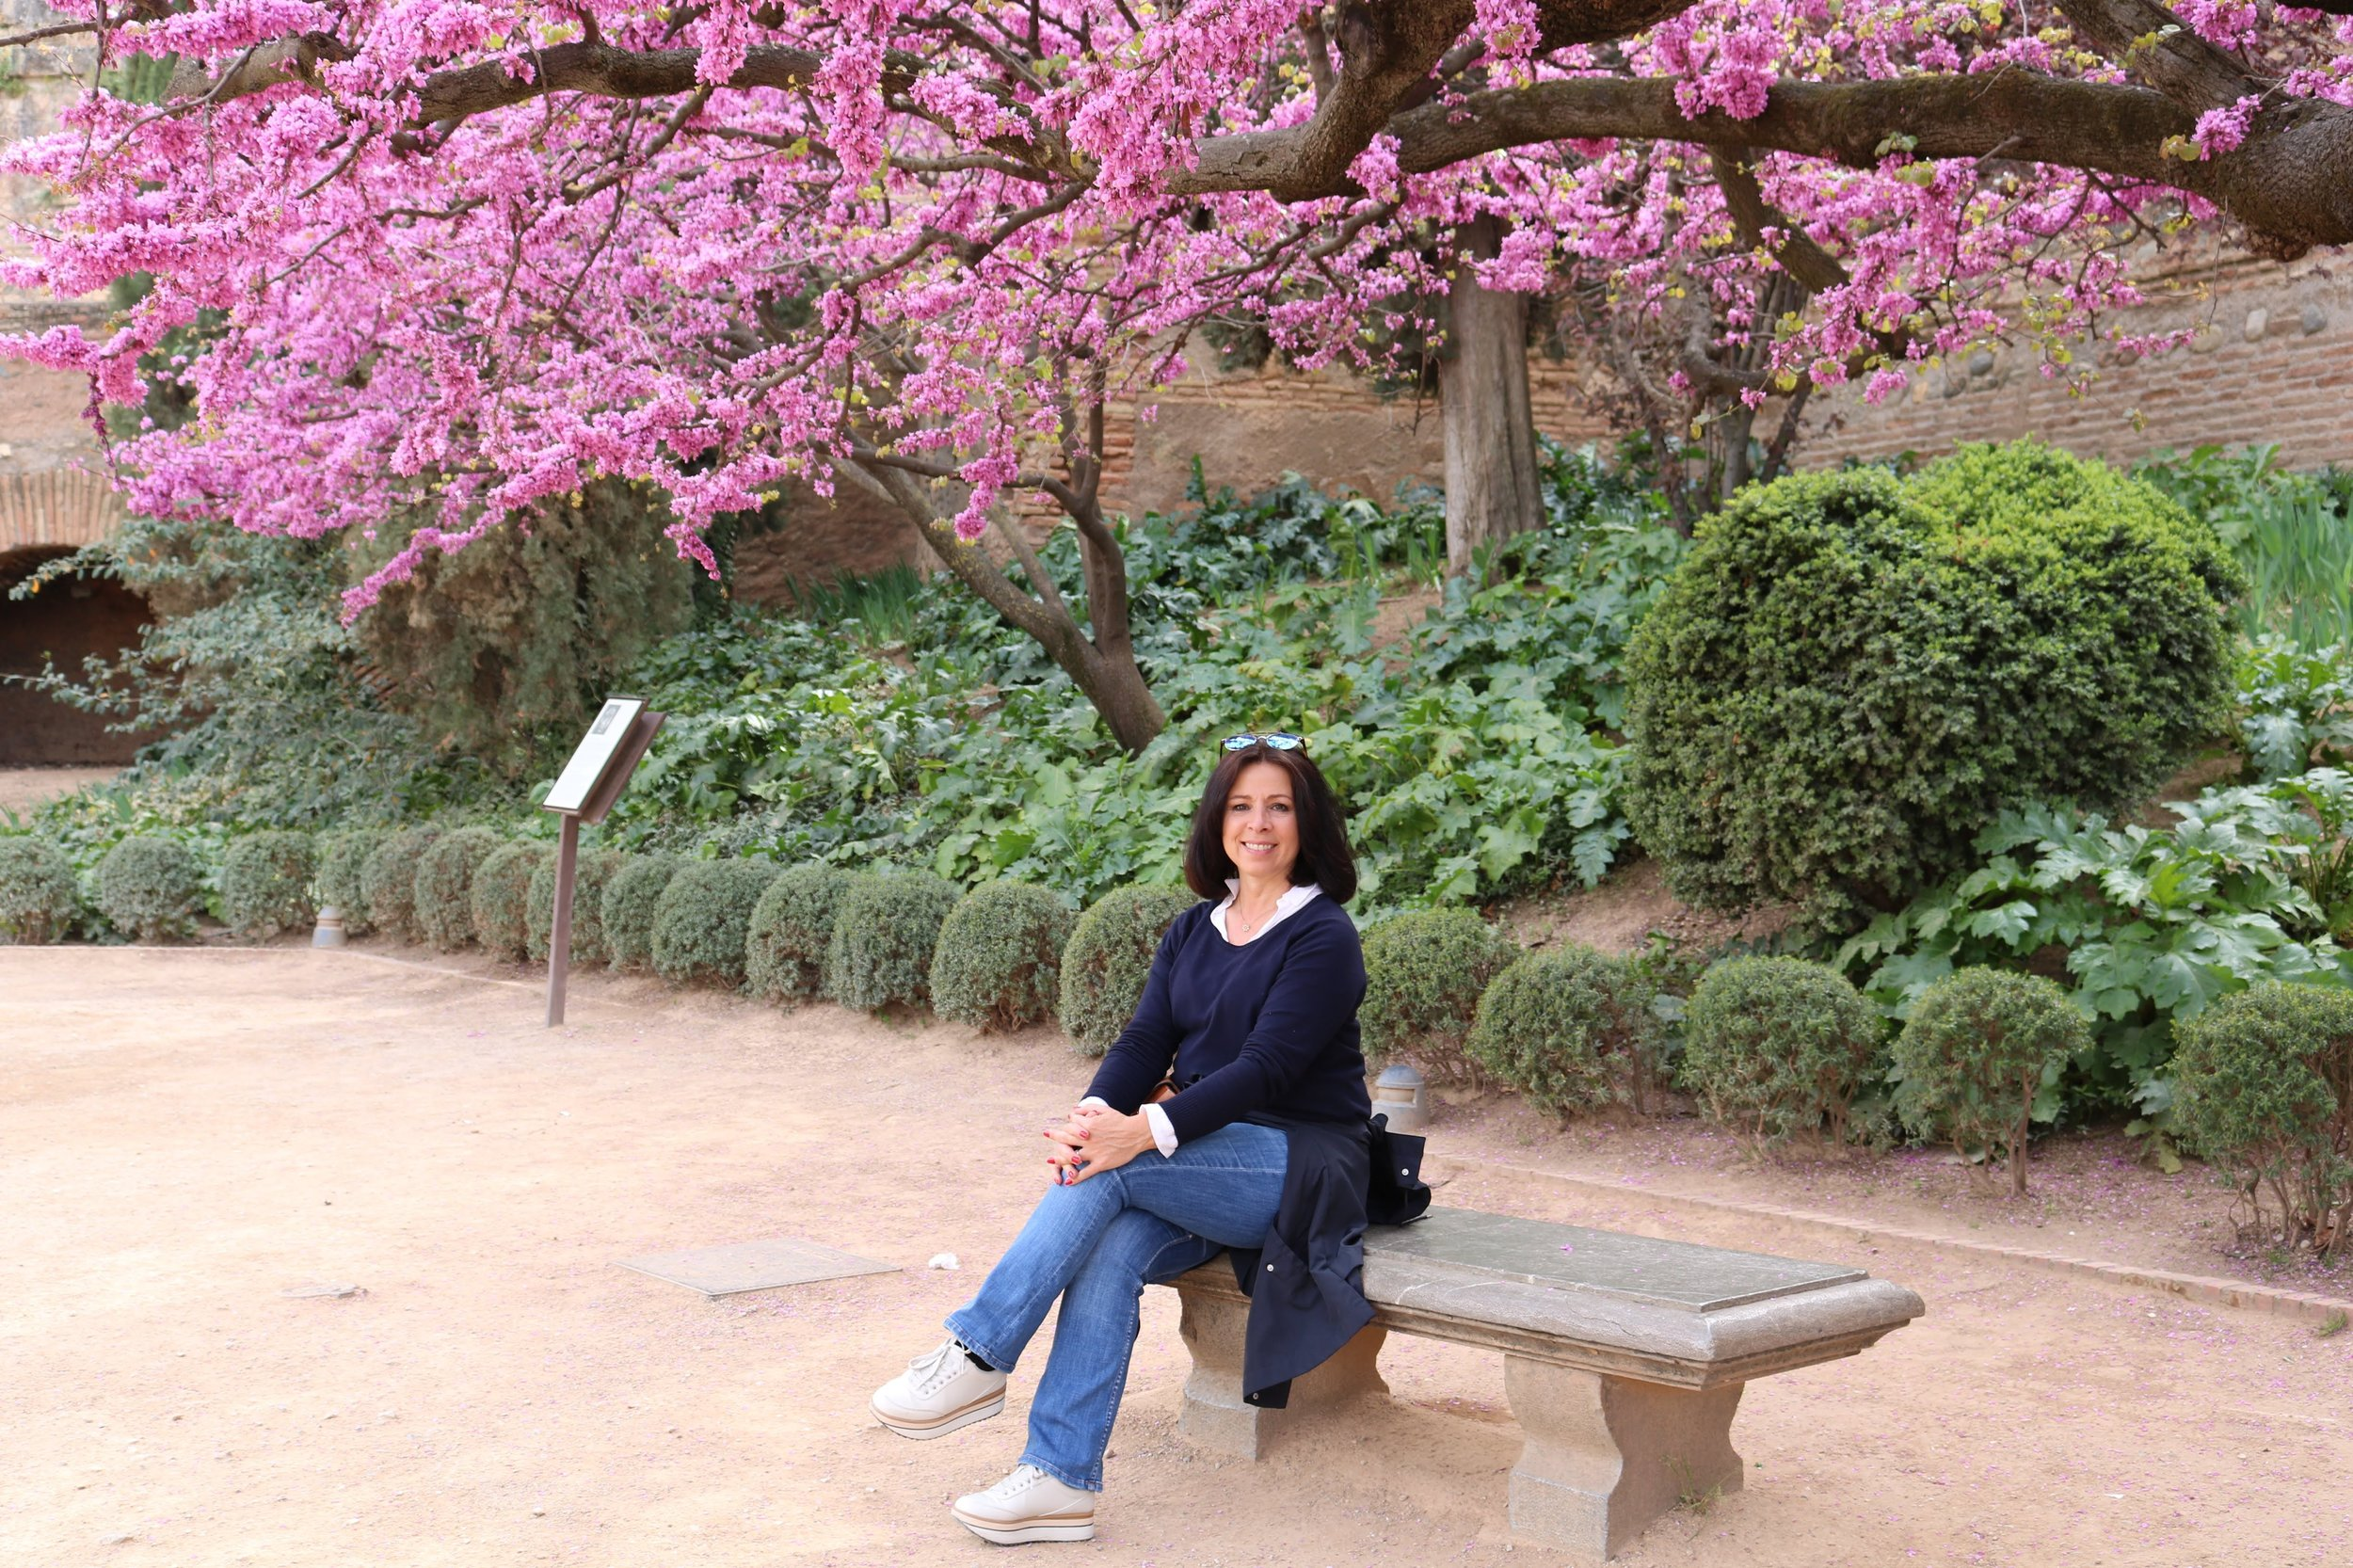 Elena in the famous gardens of the Alhambra palace